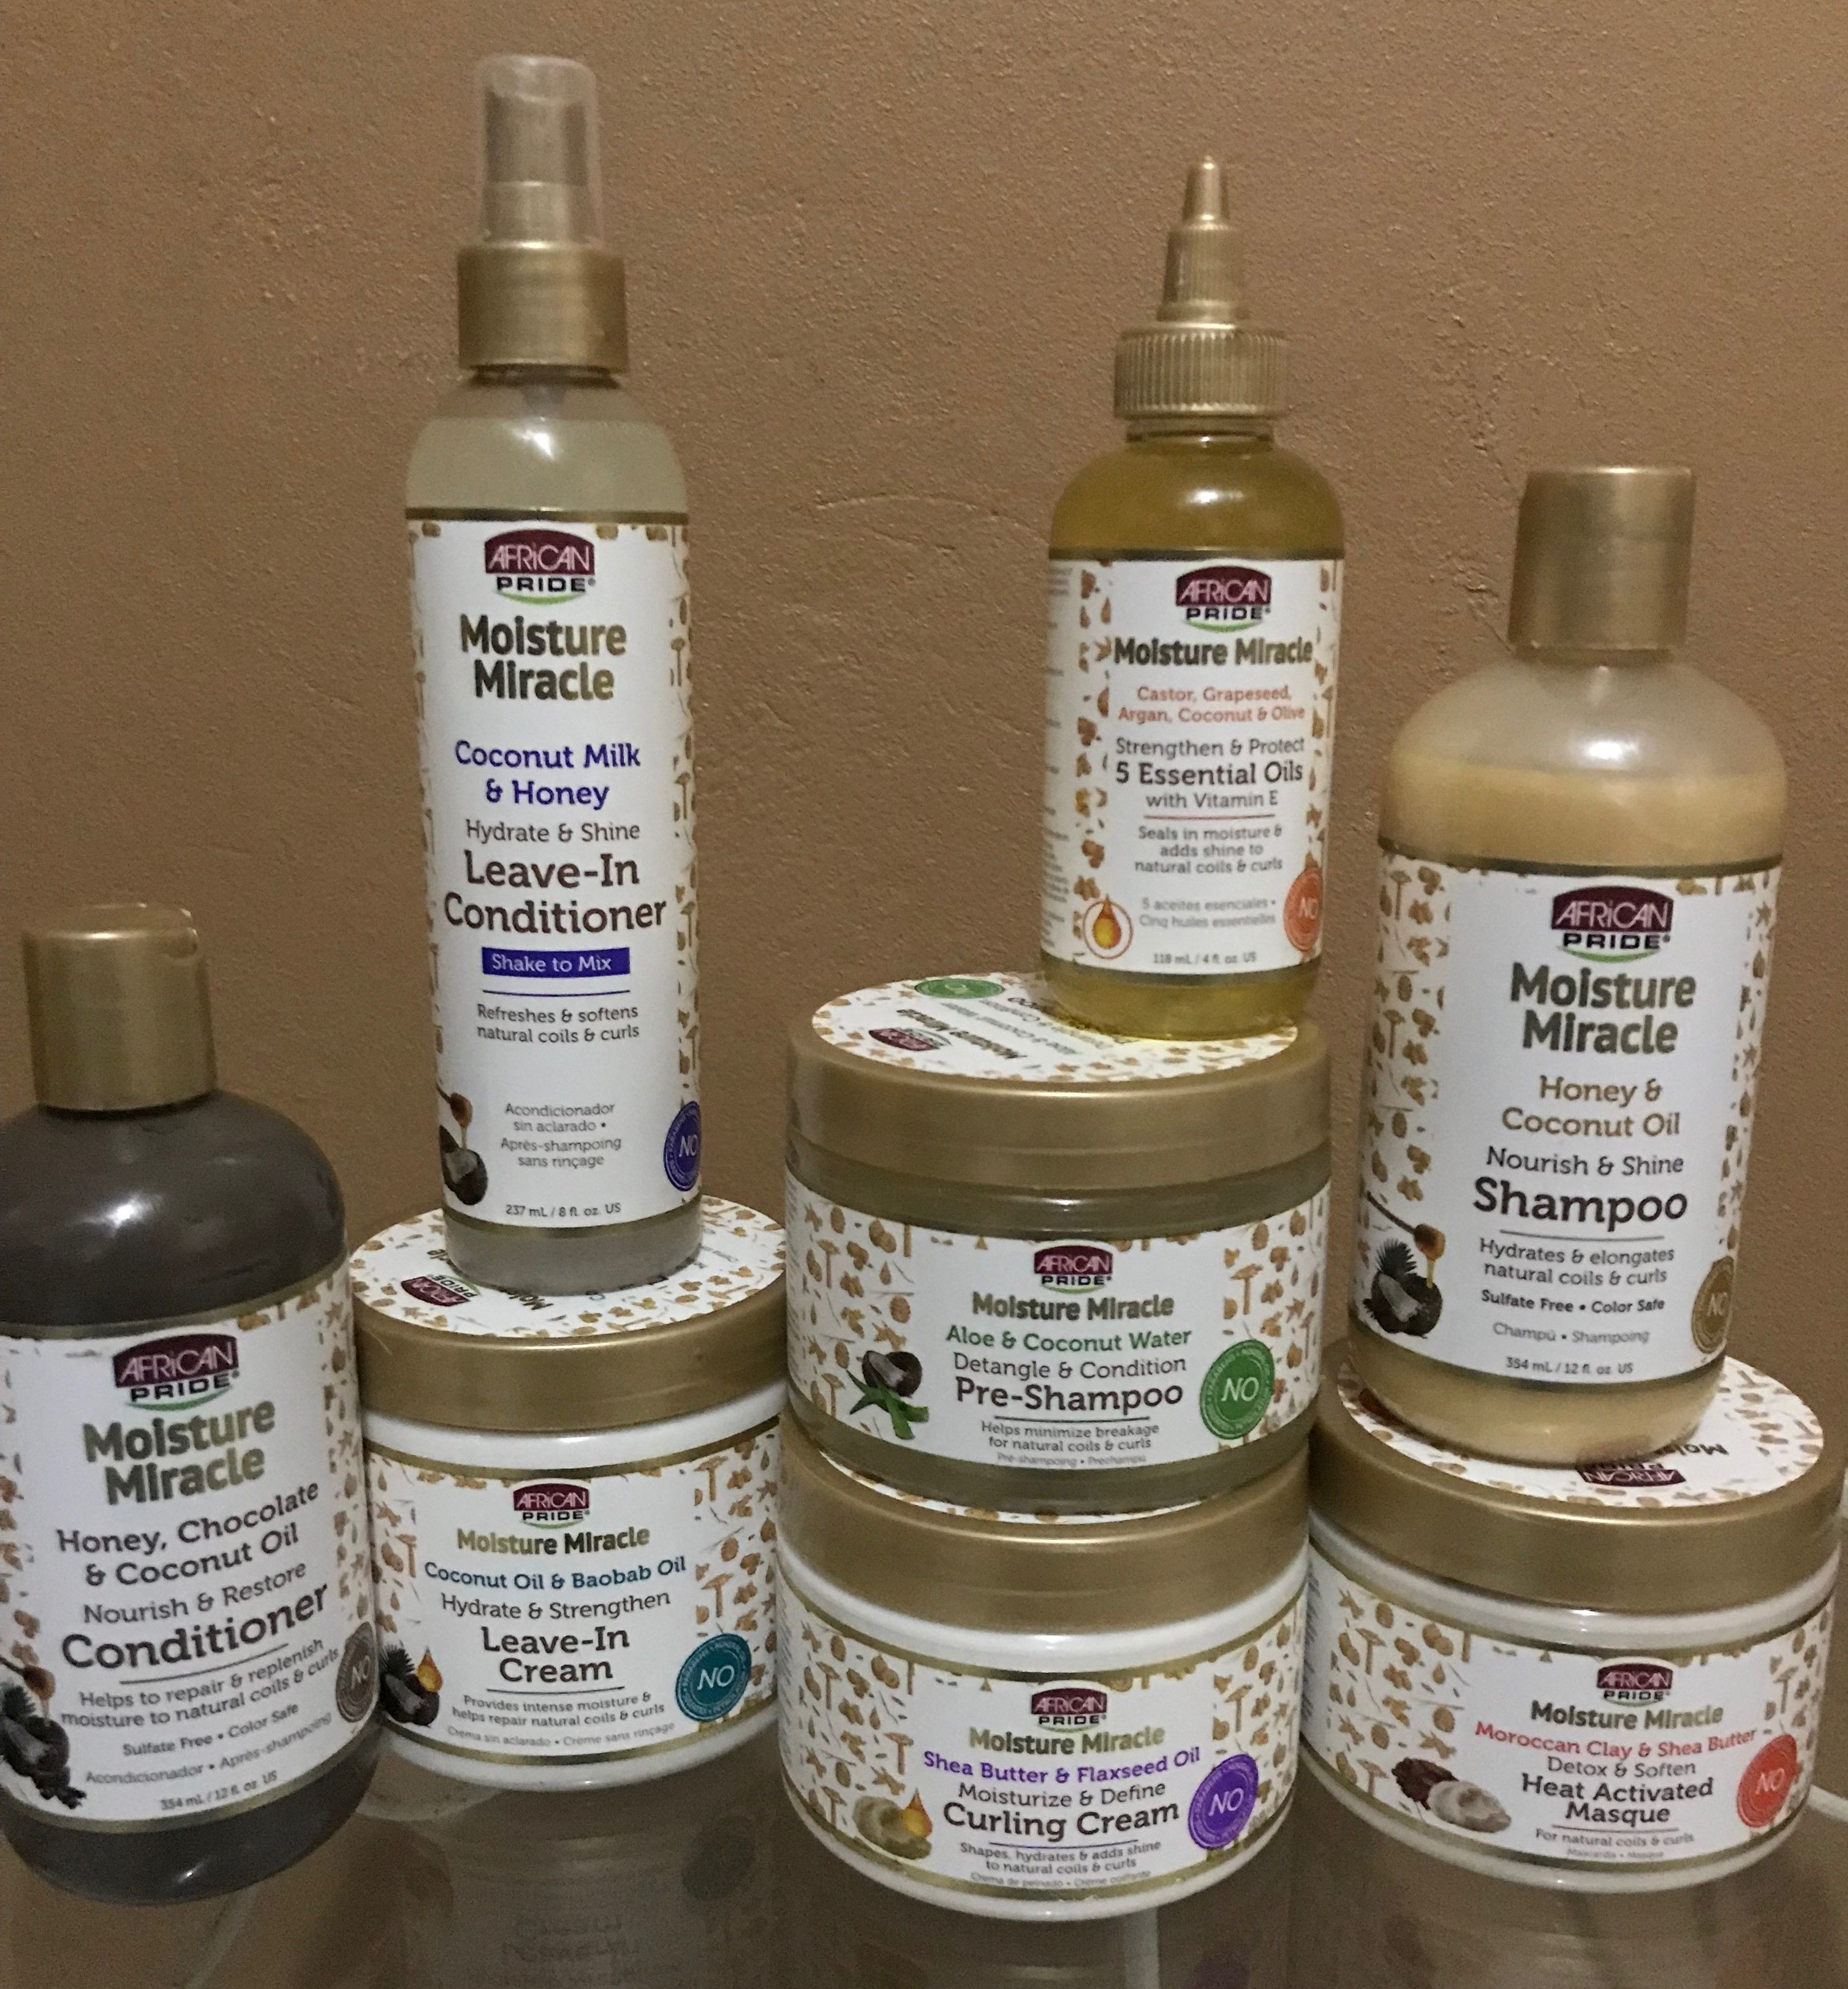 African Pride Moisture Miracle Line Natural hair styles